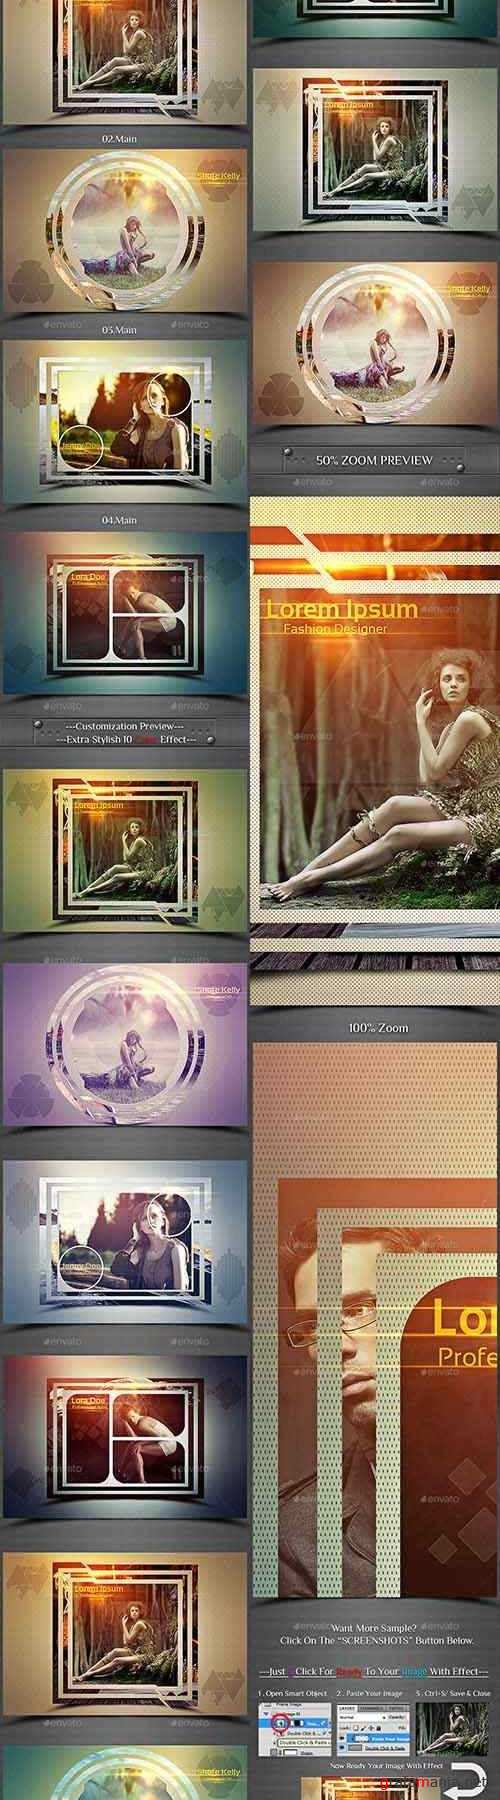 Unique Shape Photo Frame Template - 22079345